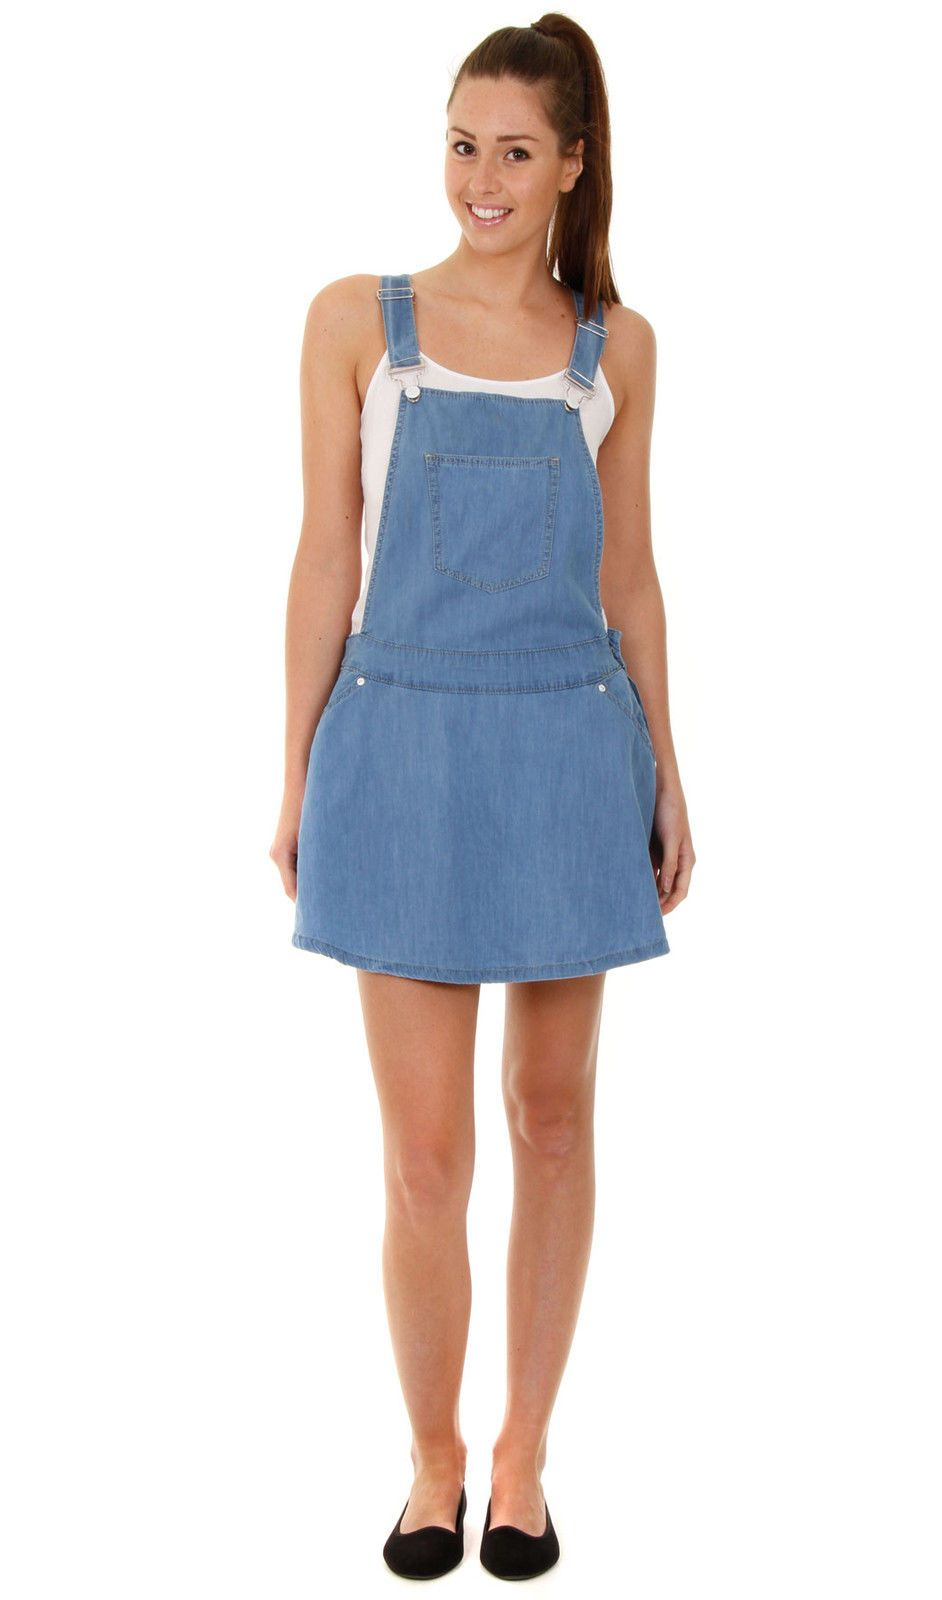 83bba55d2b Bib Overall Dress - Faded Denim